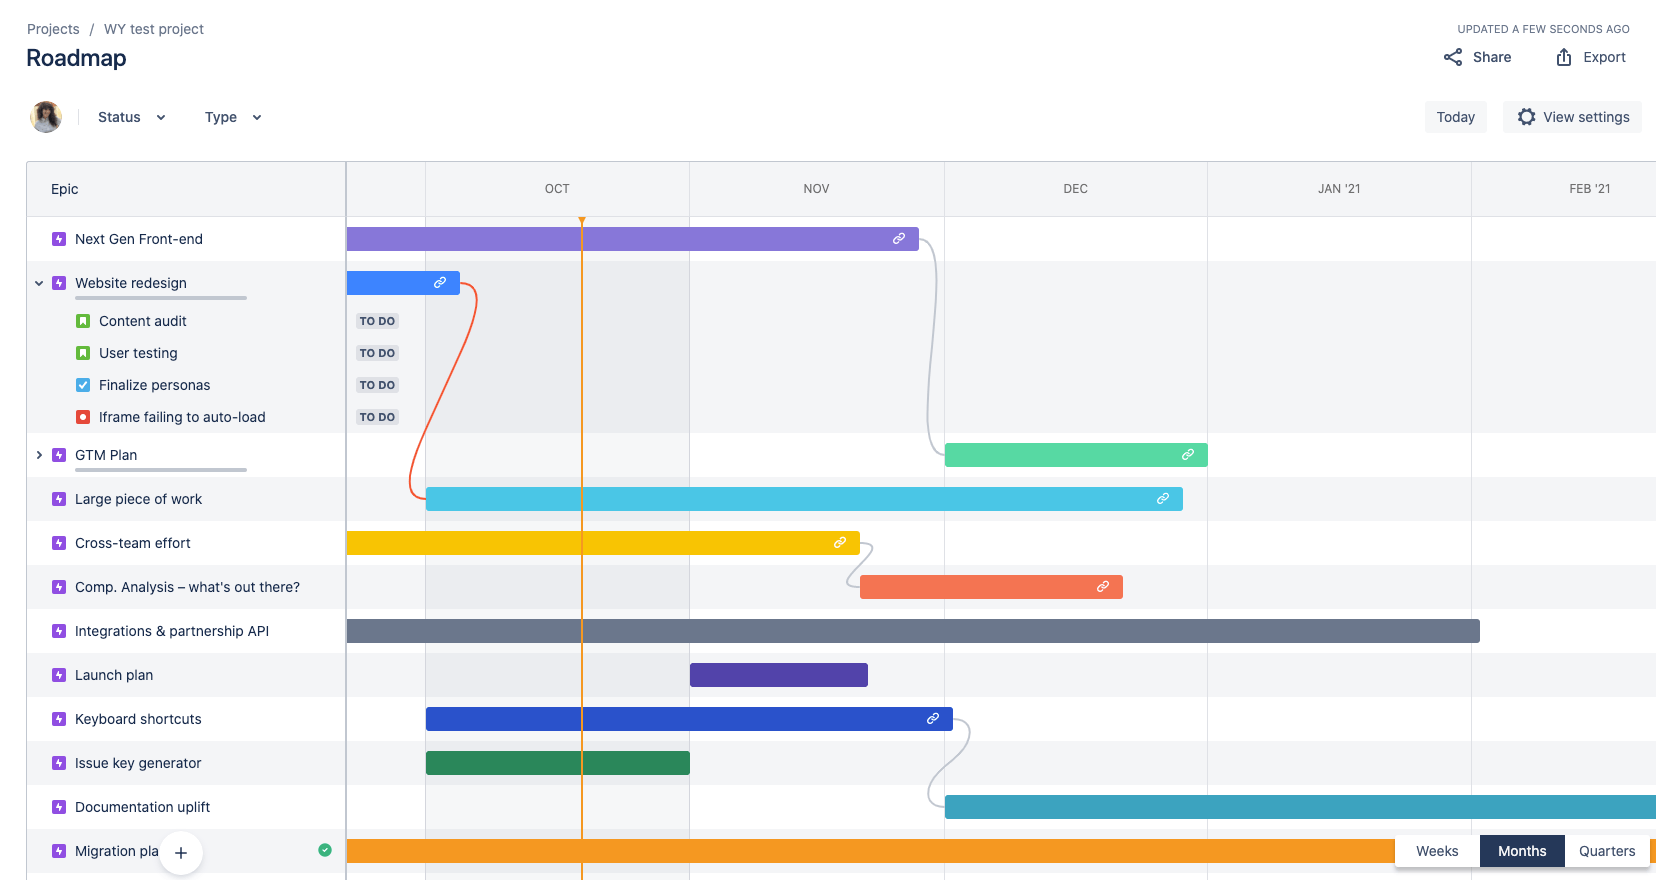 Basic Roadmap view in Jira Software